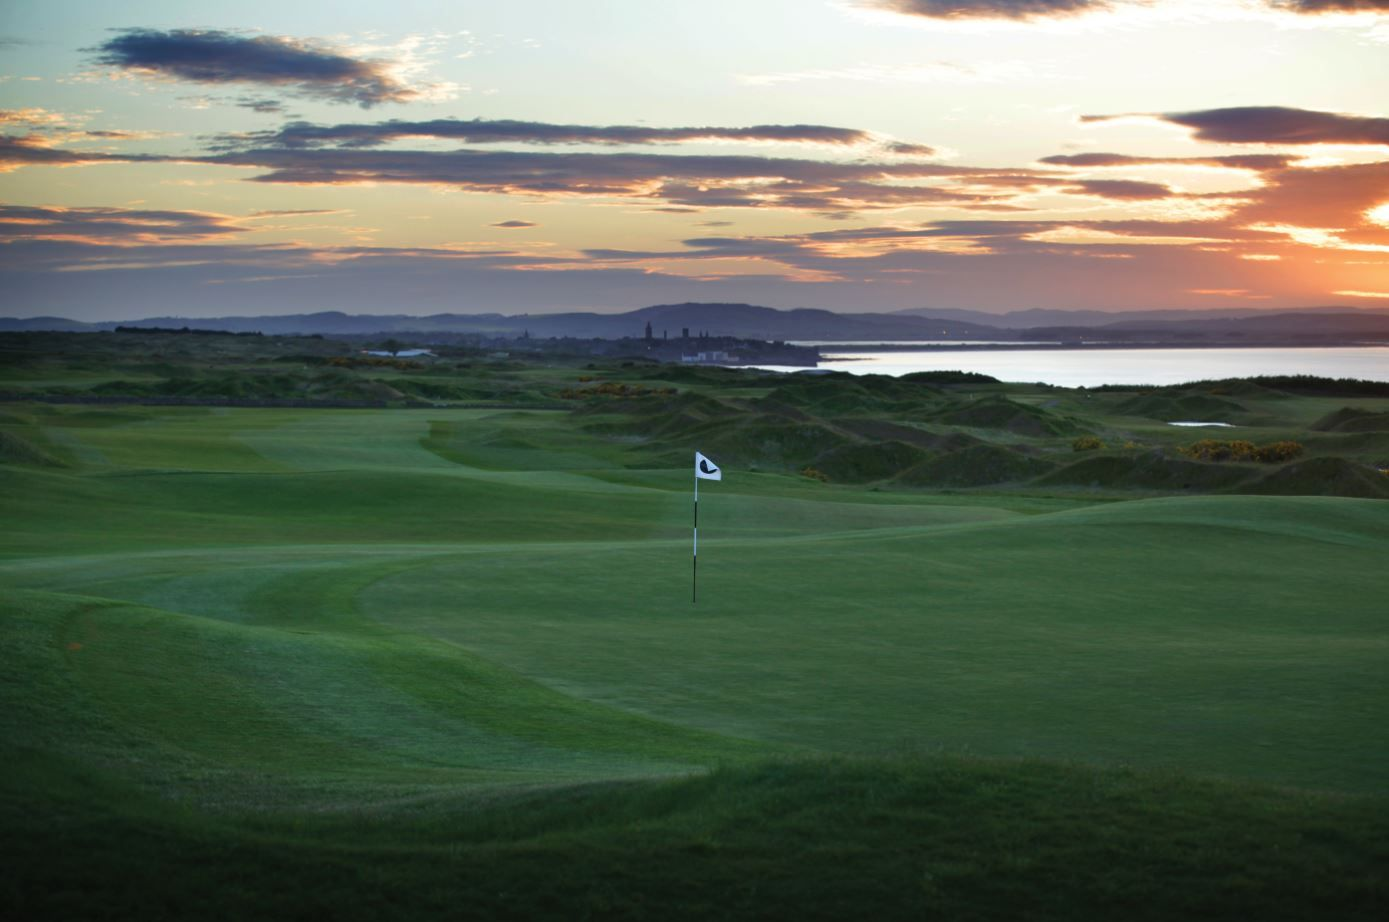 """Troon is pleased to announce it has been selected by Kennedy Wilson Europe Real Estate PLC, owner of Fairmont St Andrews, to manage golf operations at the championship venue located at the """"home of golf."""" #Troon #TroonGolf #PlayTroon #HomeOfGolf"""